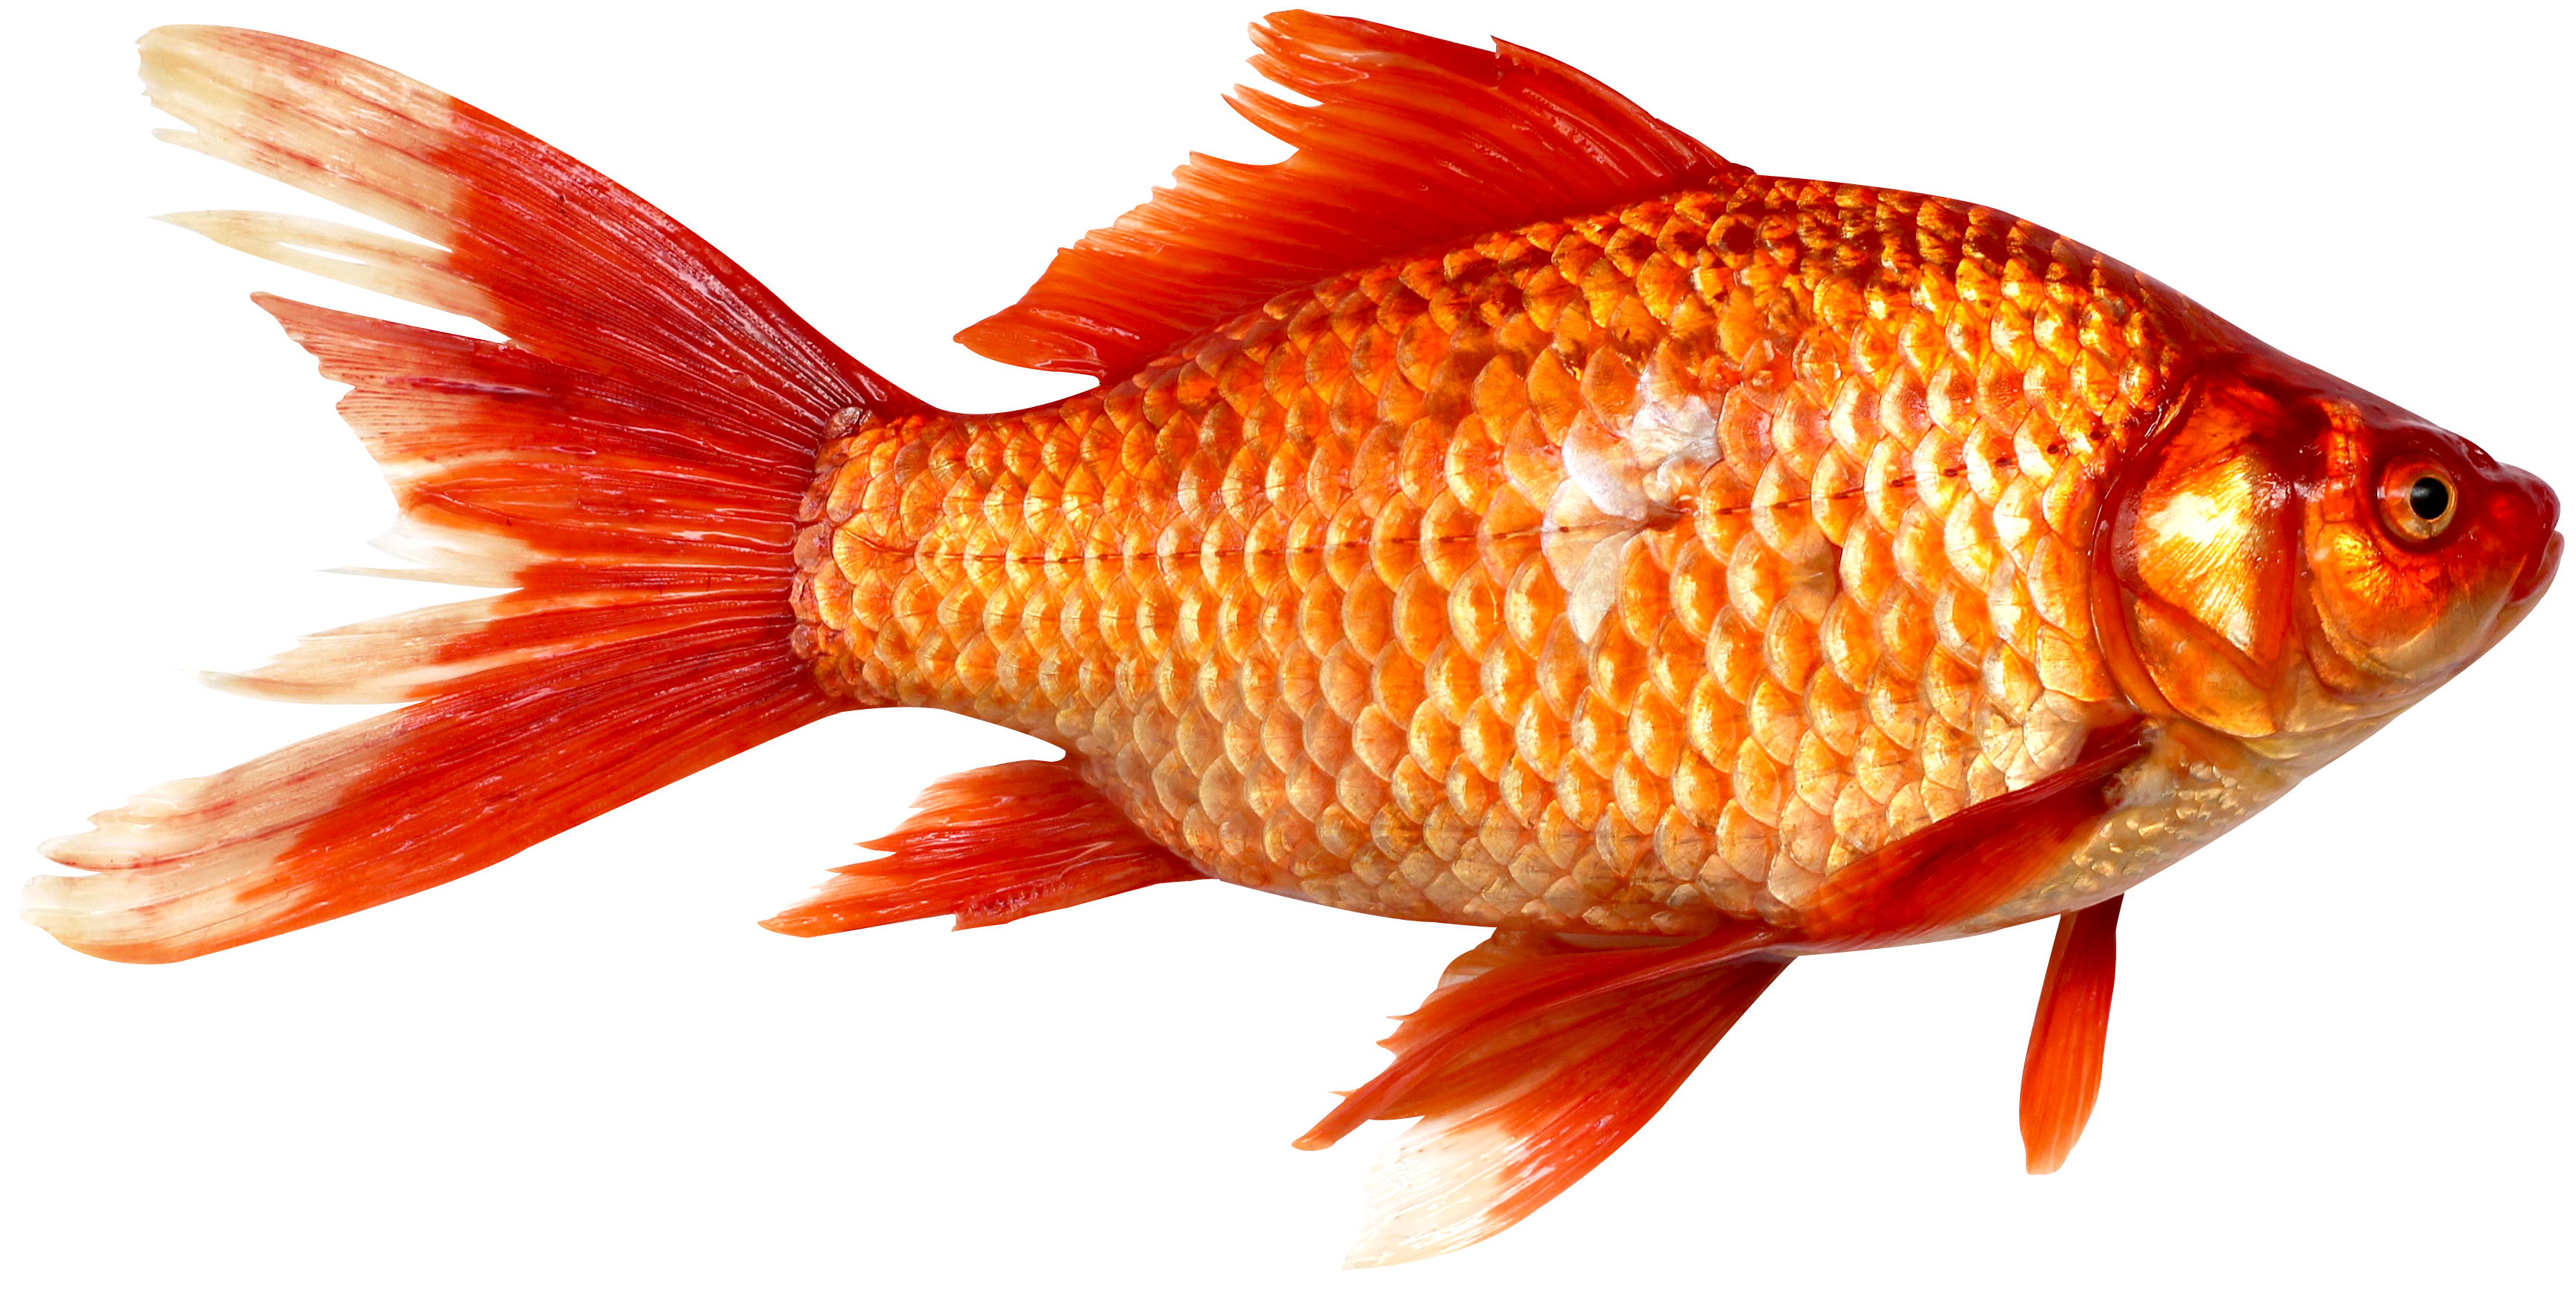 Orange Fish PNG Image image #41459 - Fish PNG